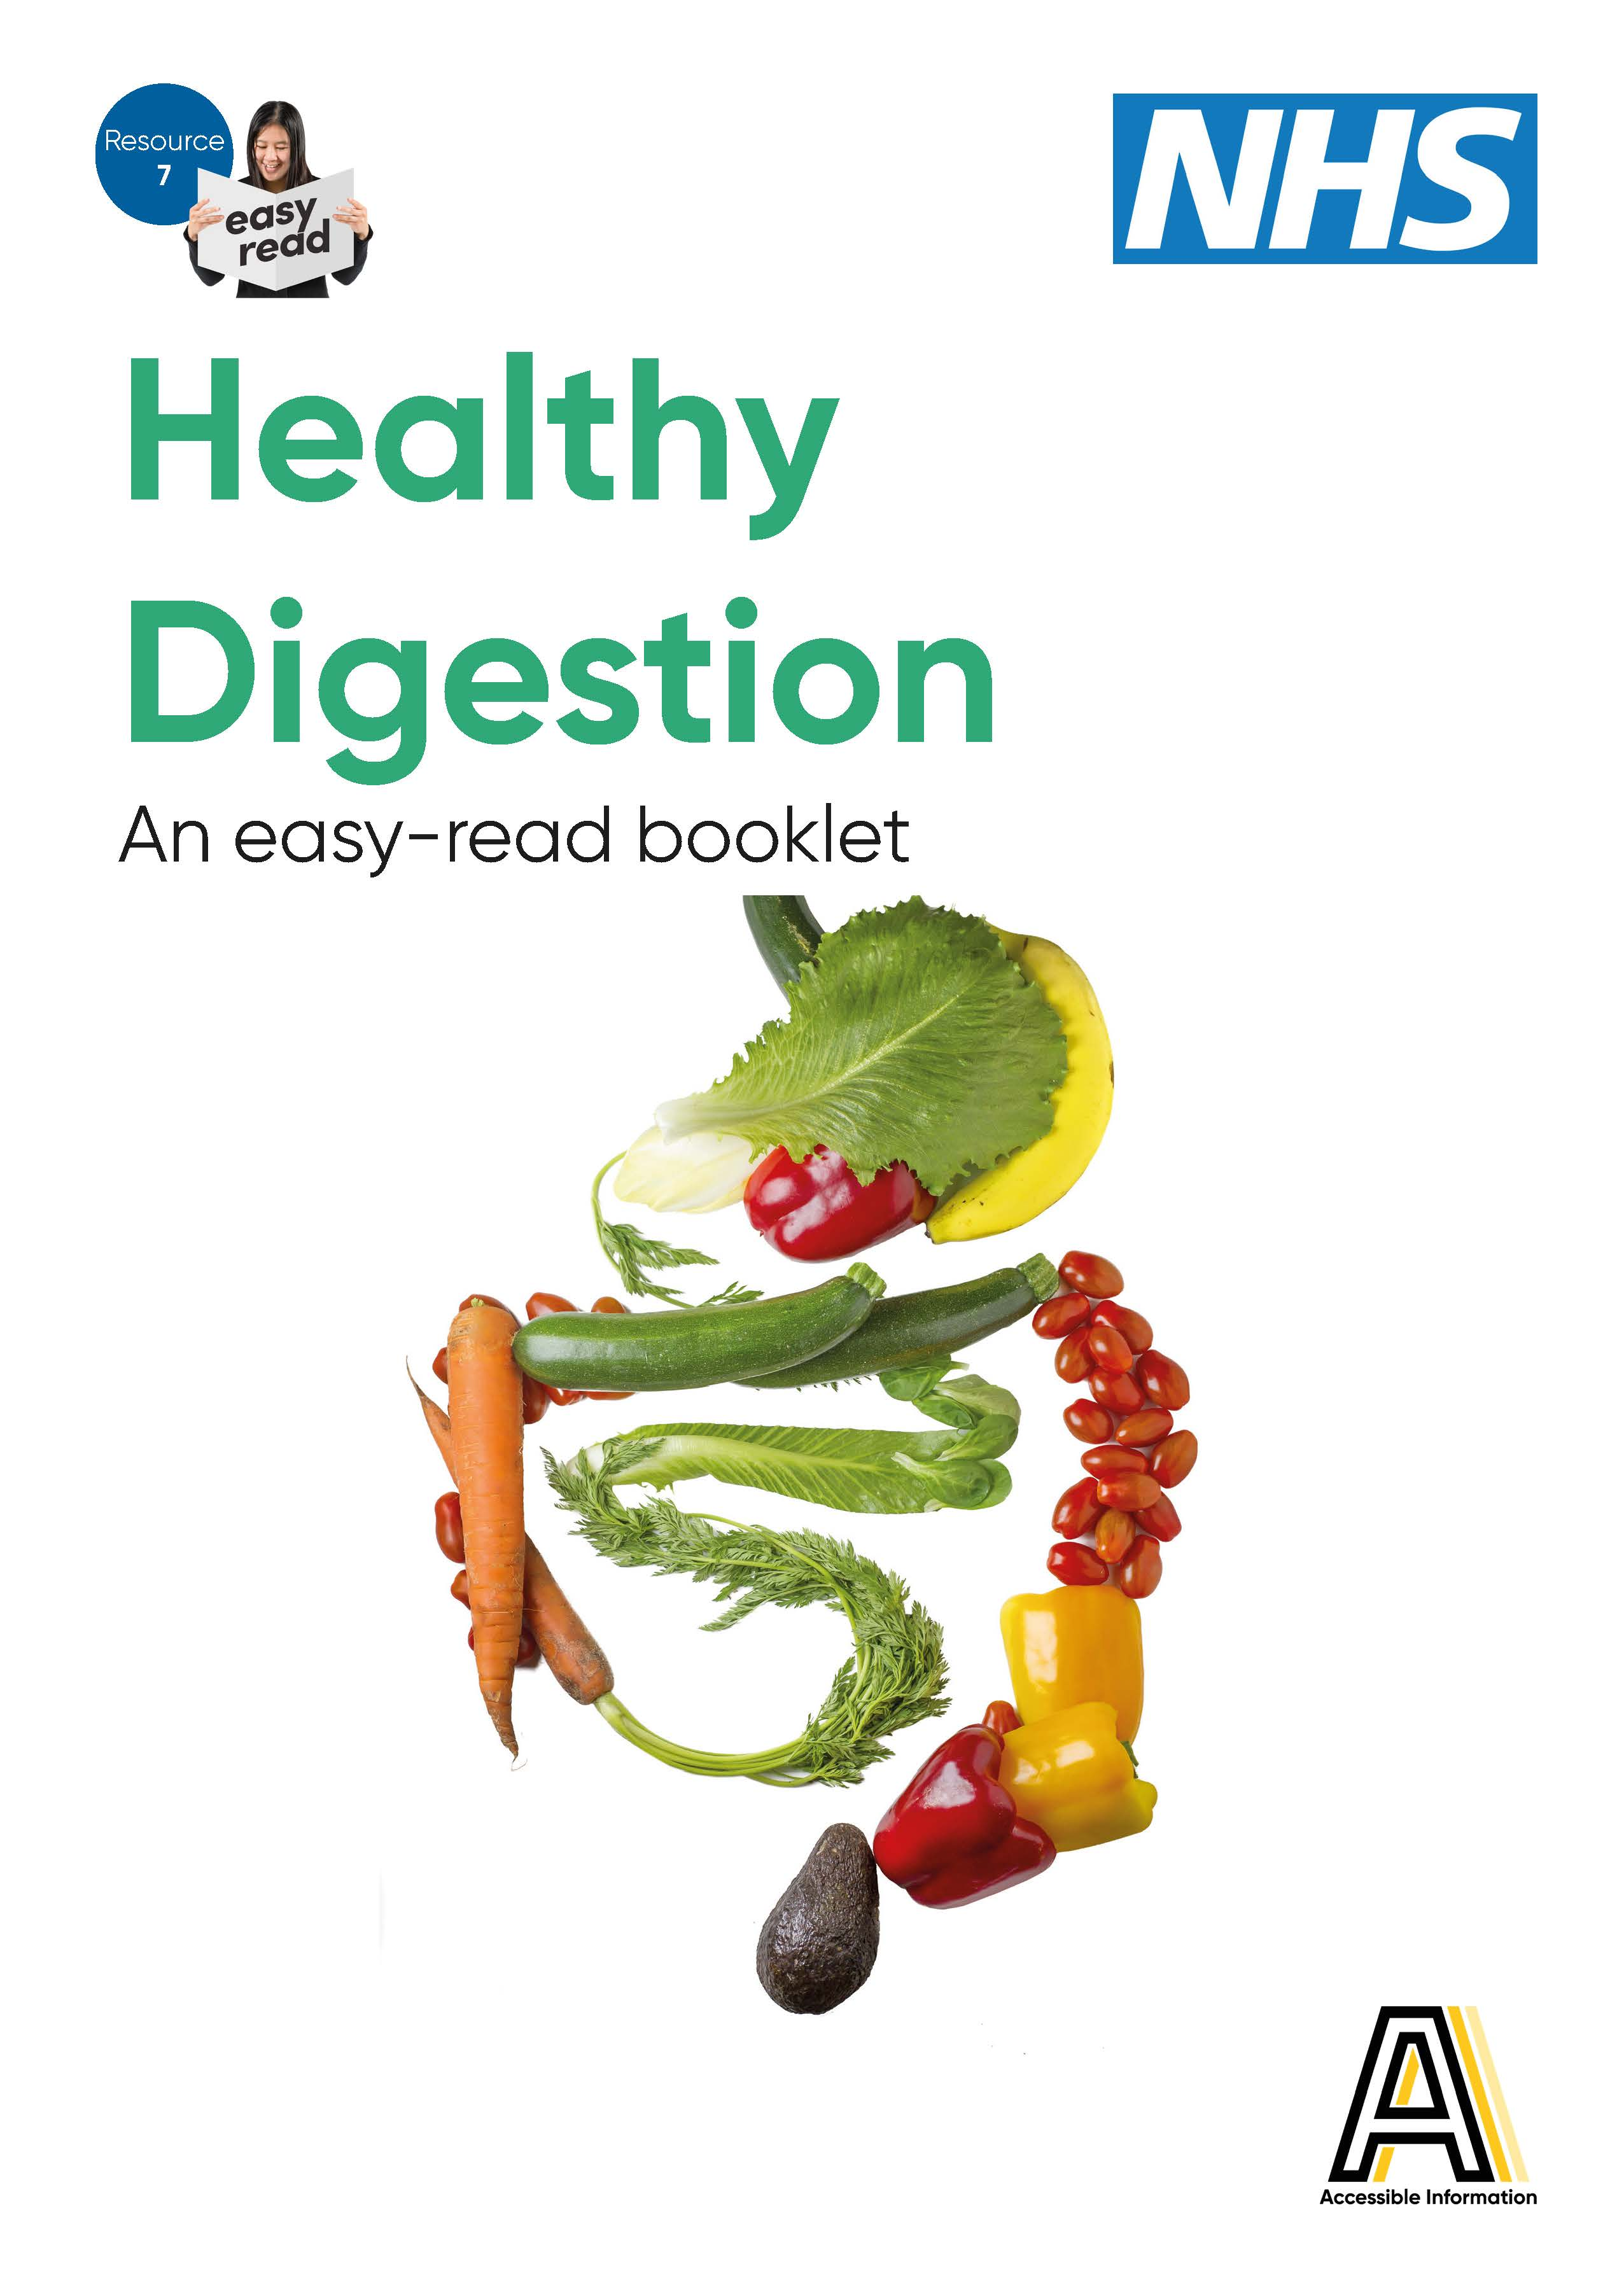 Healthy digestion (Essex)